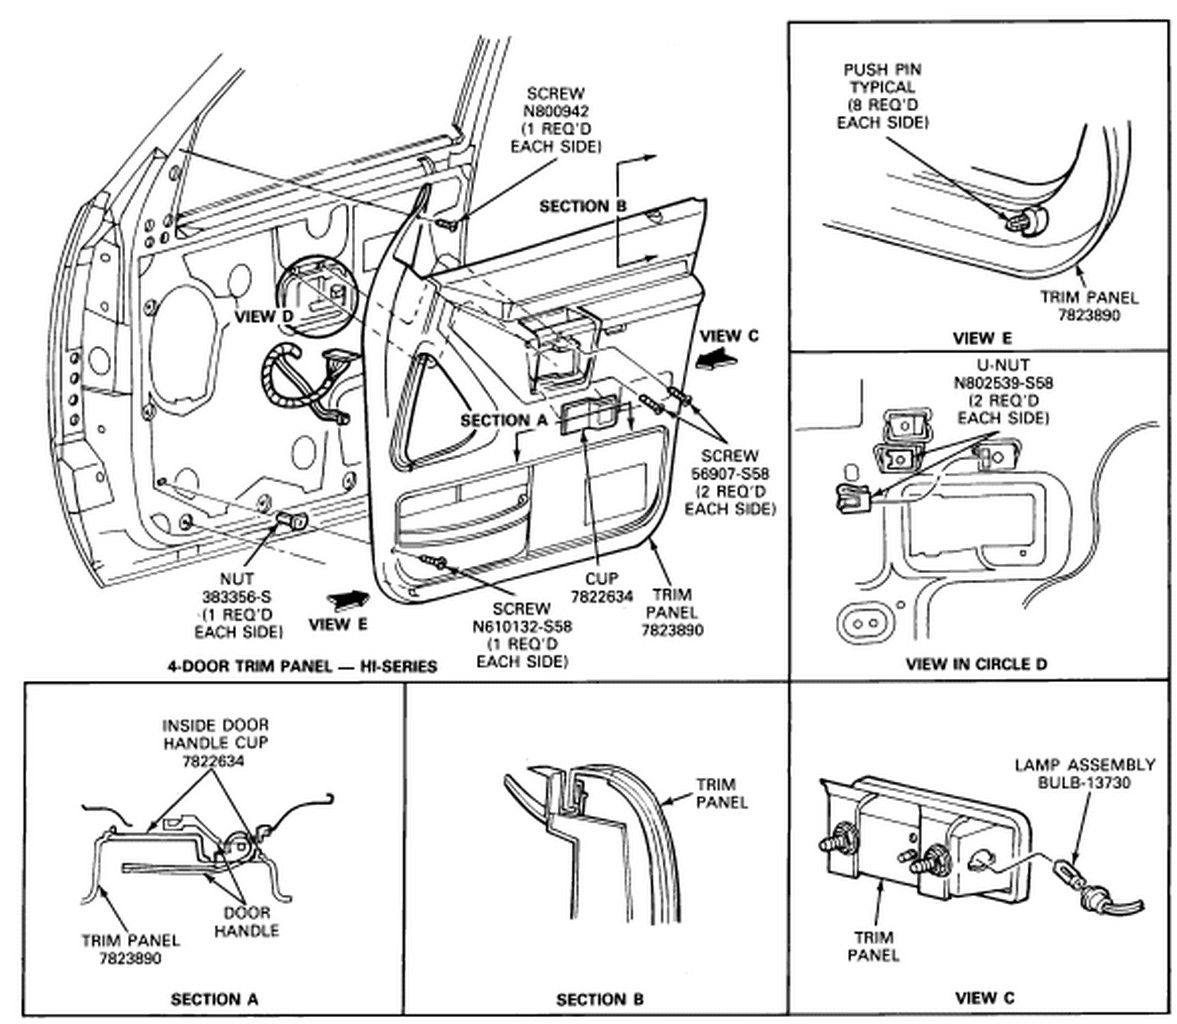 medium resolution of 2000 ford explorer door diagram wiring diagram expert 2000 ford explorer door latch diagram 2000 ford